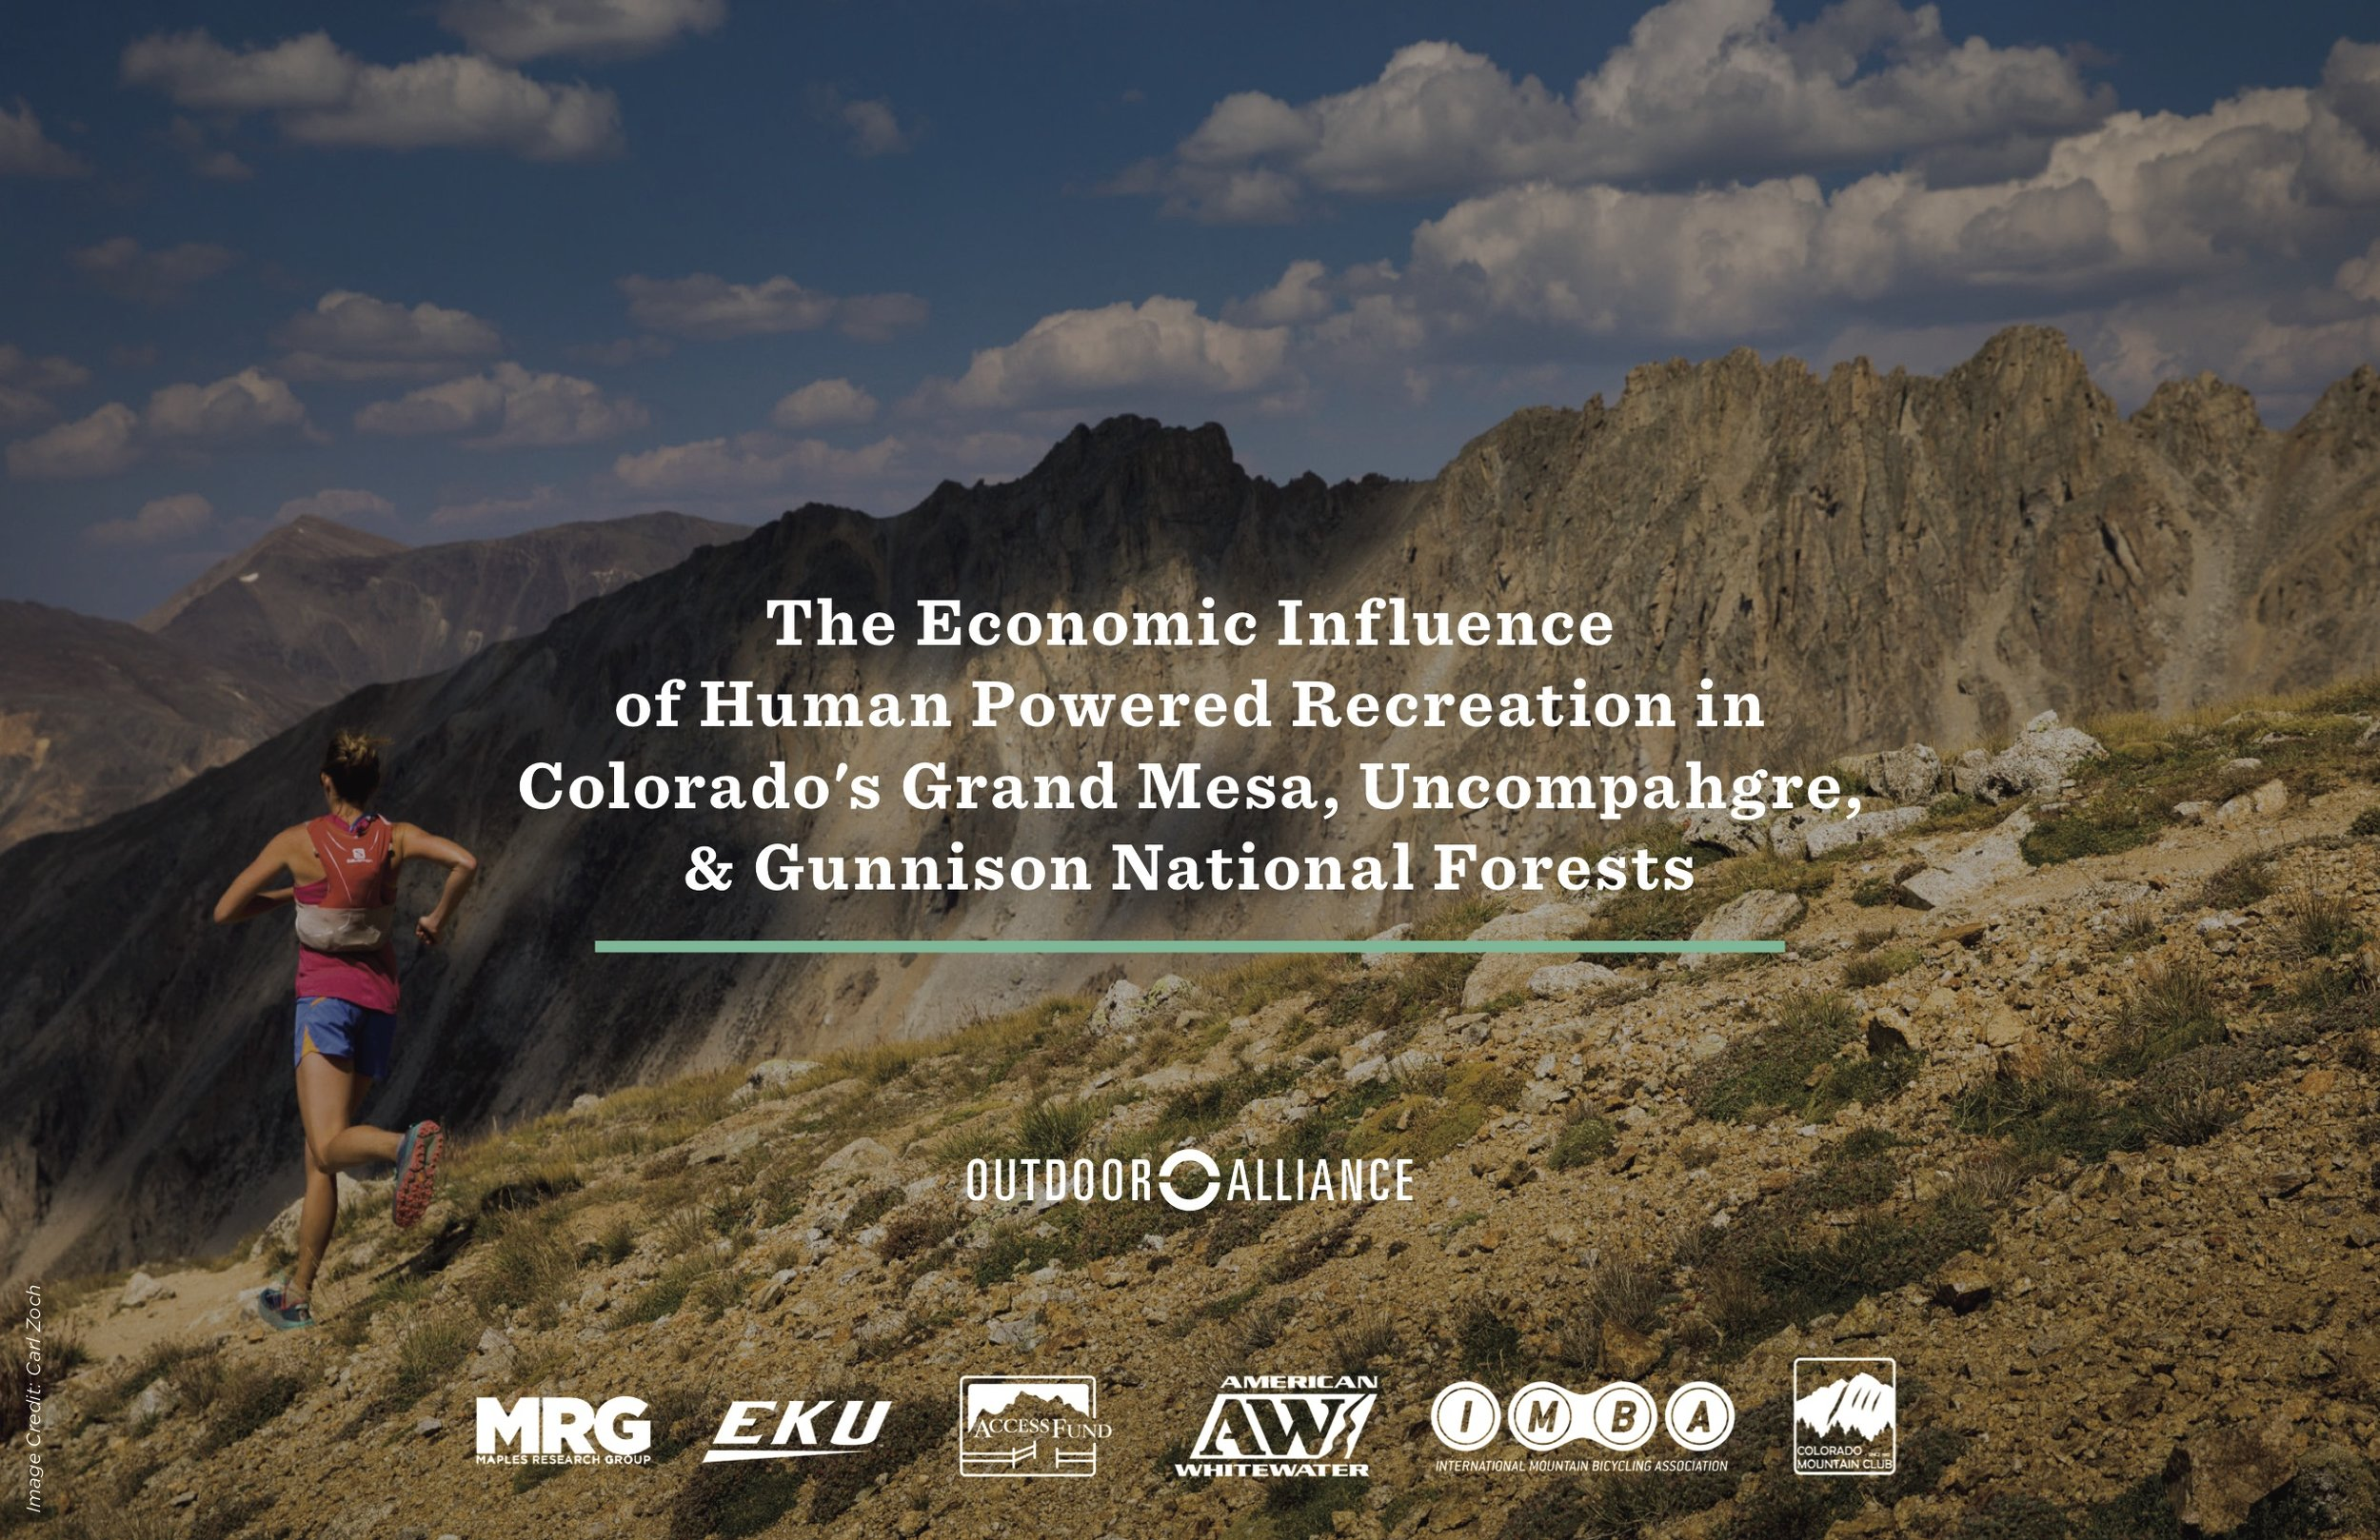 Learn more about the economic influence of outdoor recreation in the GMUG National Forests by clicking on the image above.